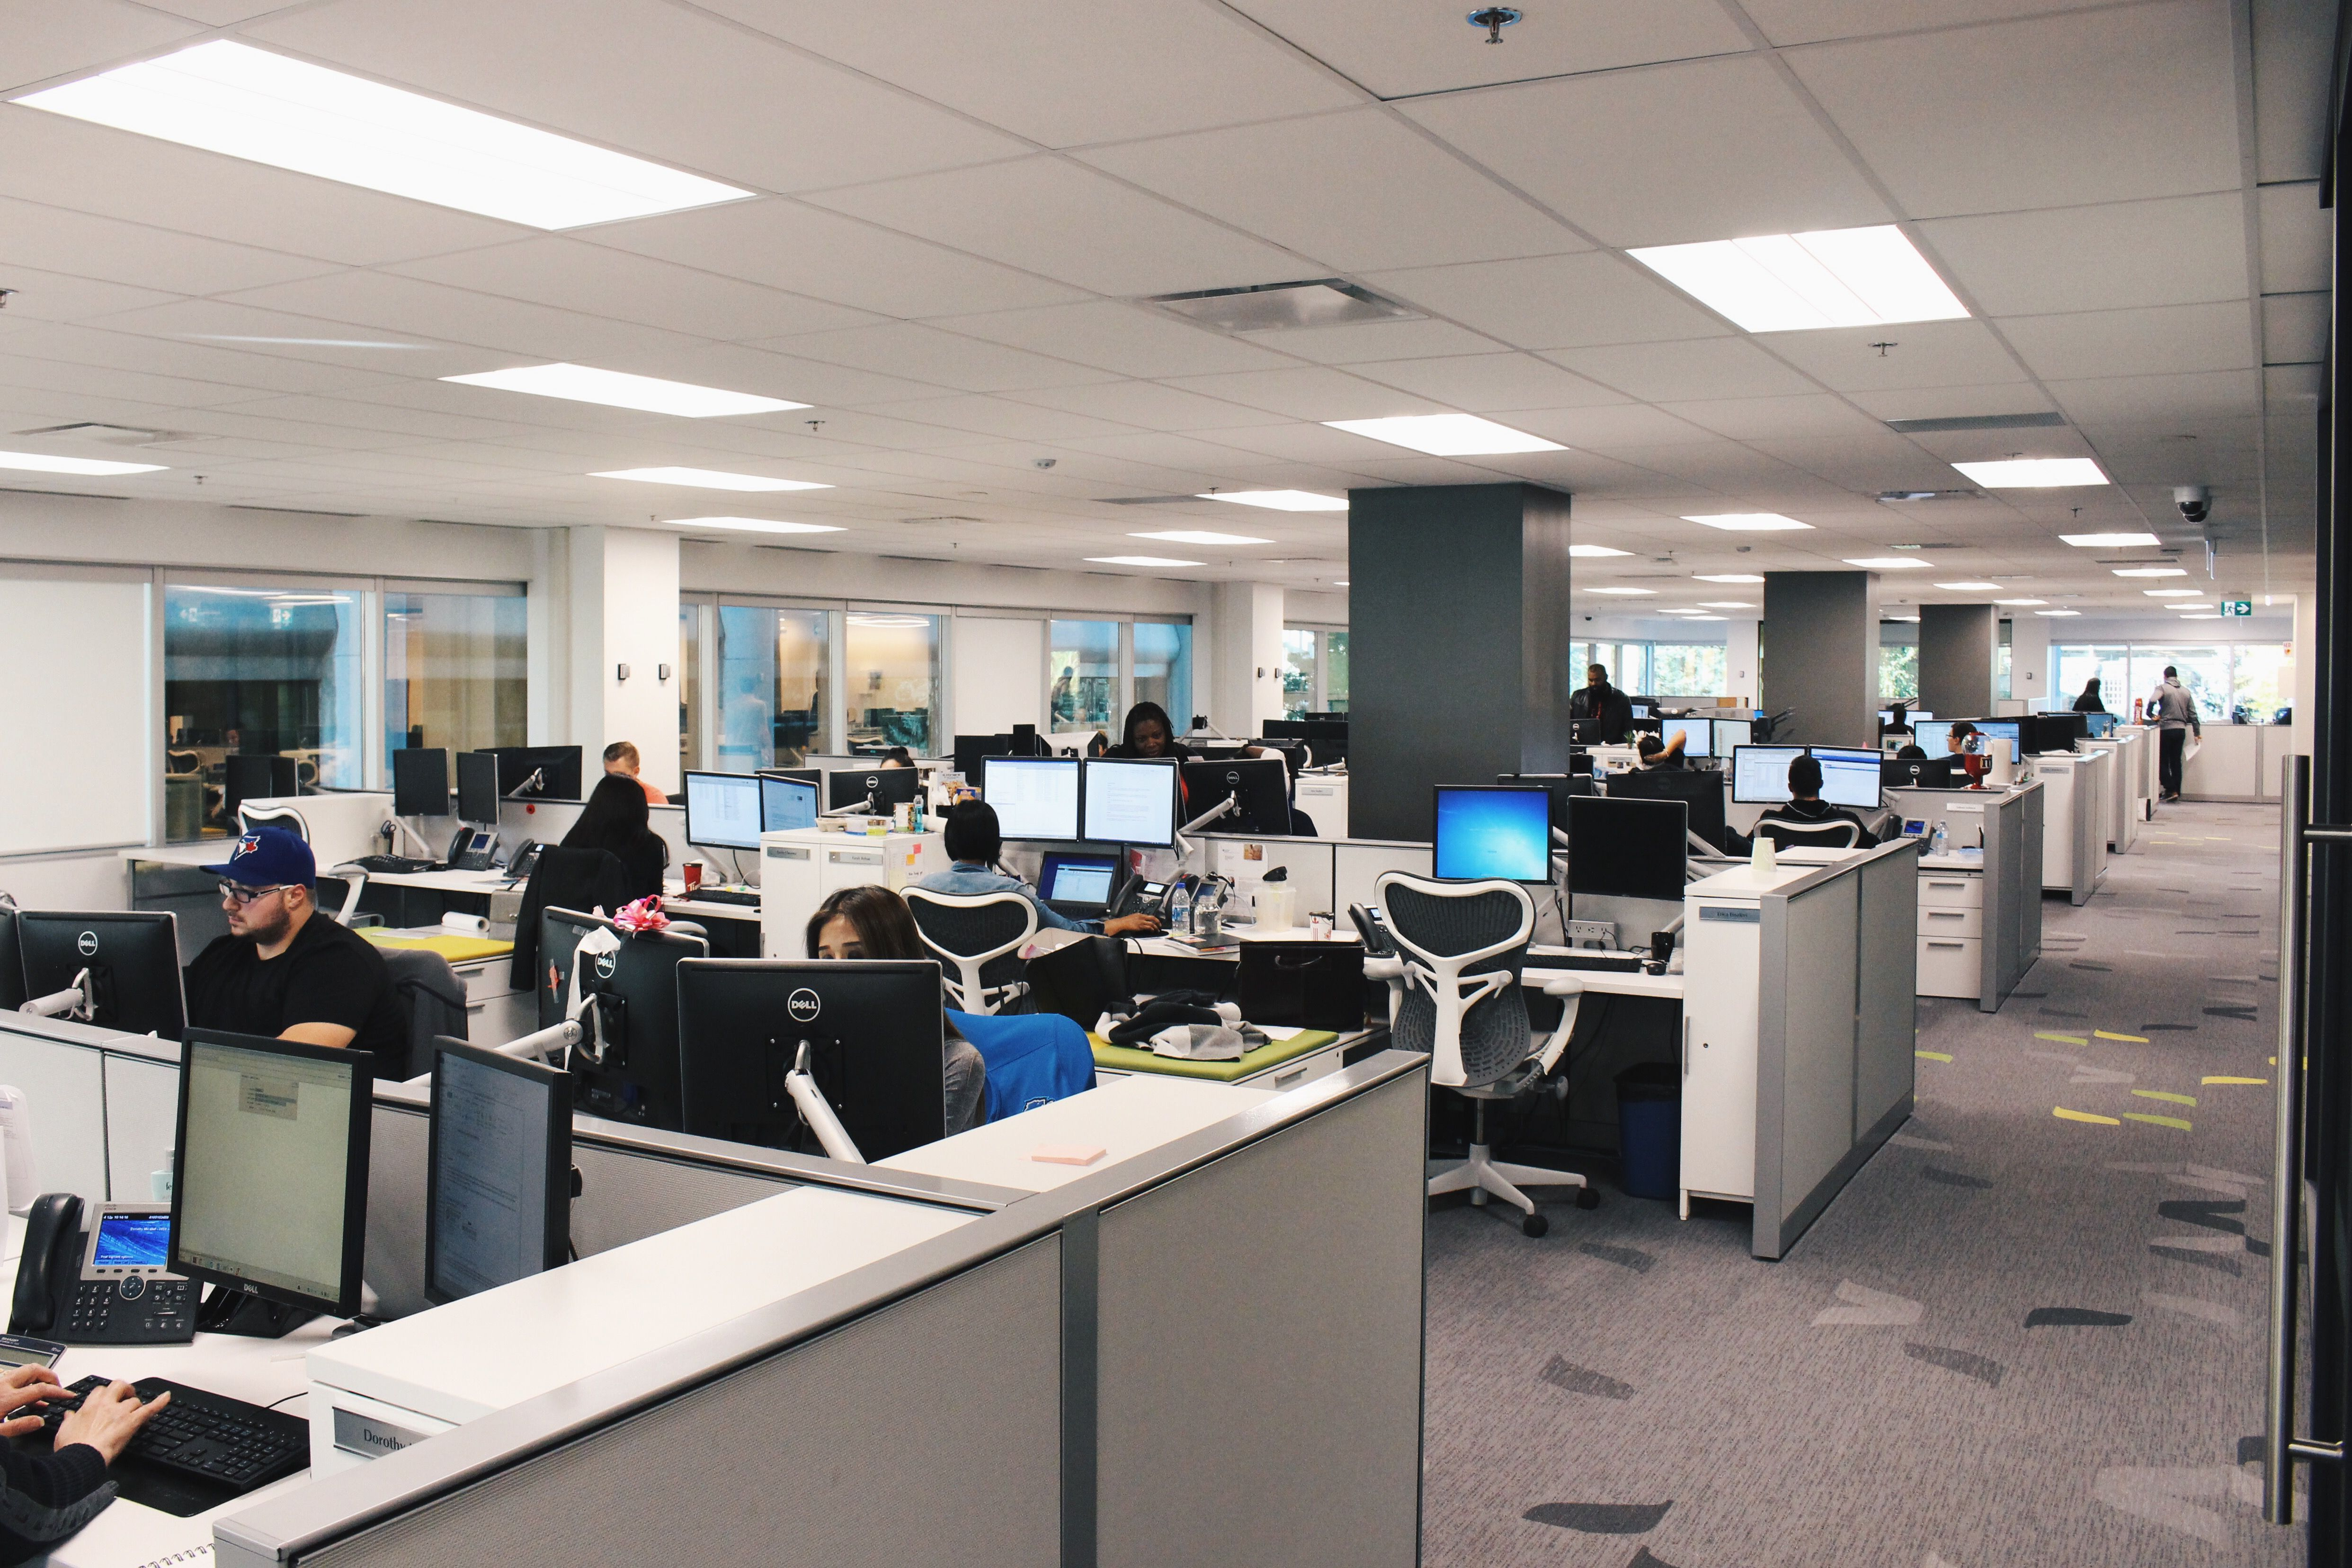 extraordinary investment bank office | Canada's first Mobile Bank was born at Yonge + St. Clair ...